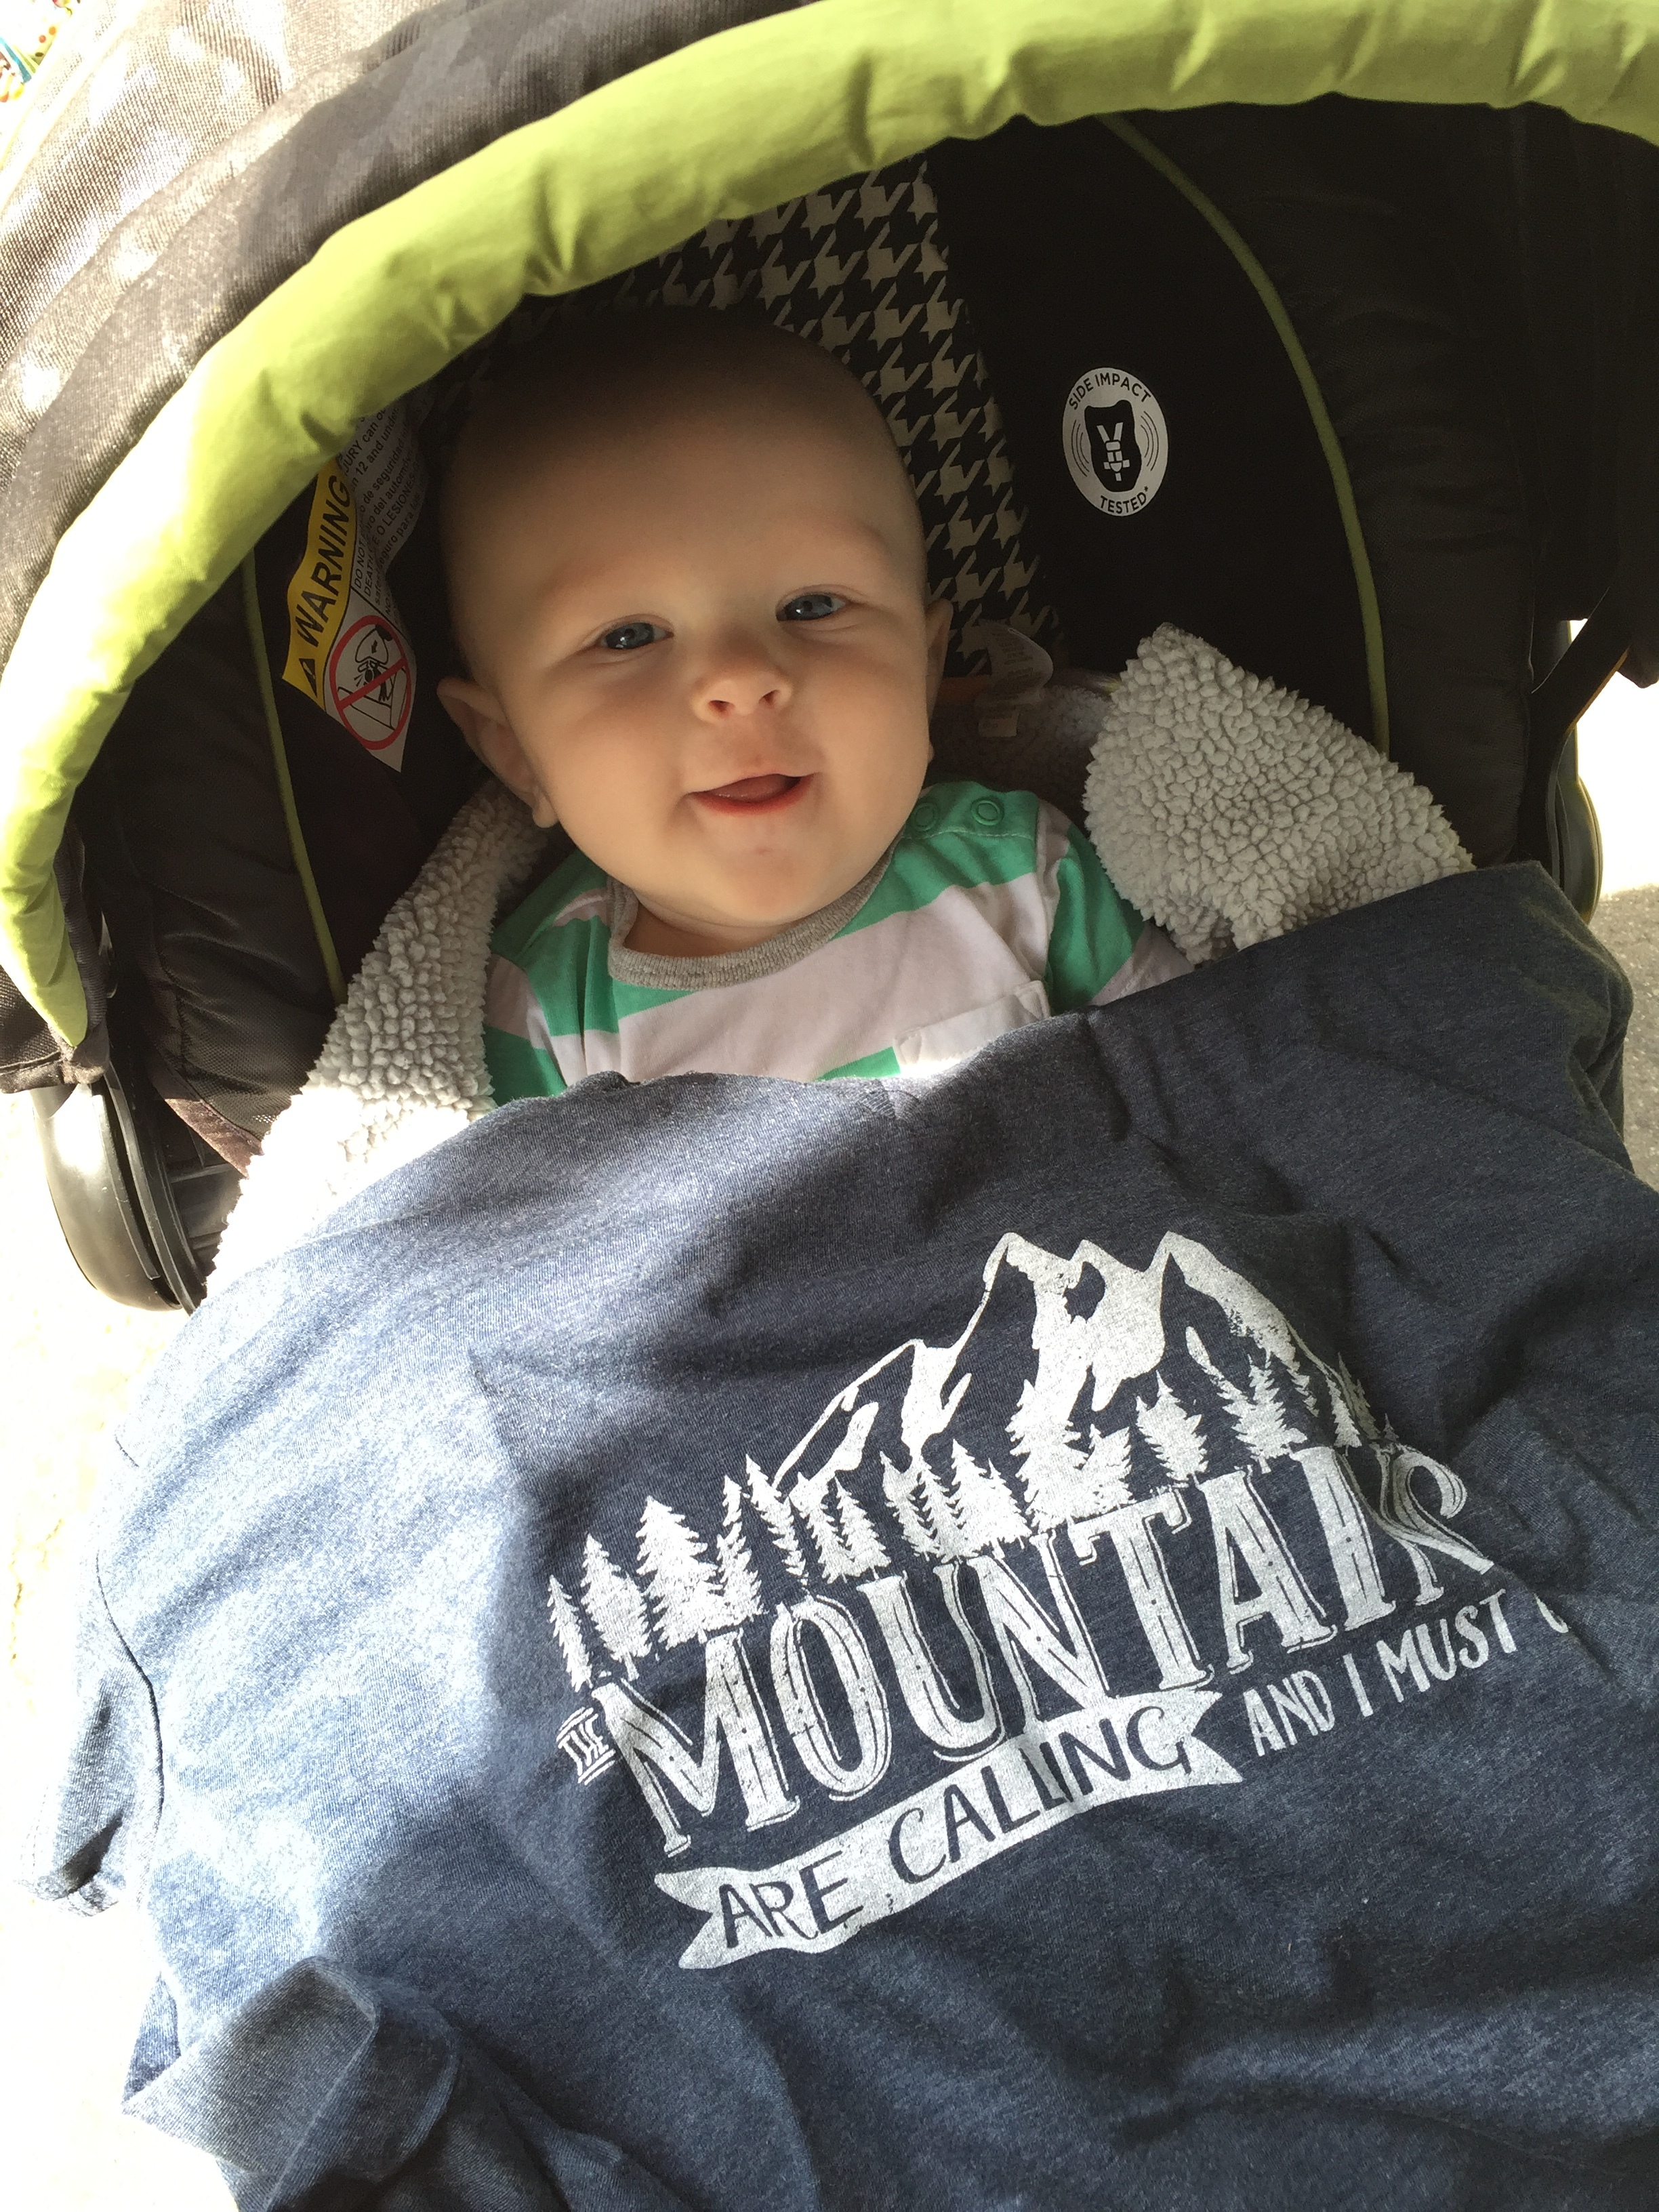 T-shirt design available through  www.decaftees.com . Cute baby not included.